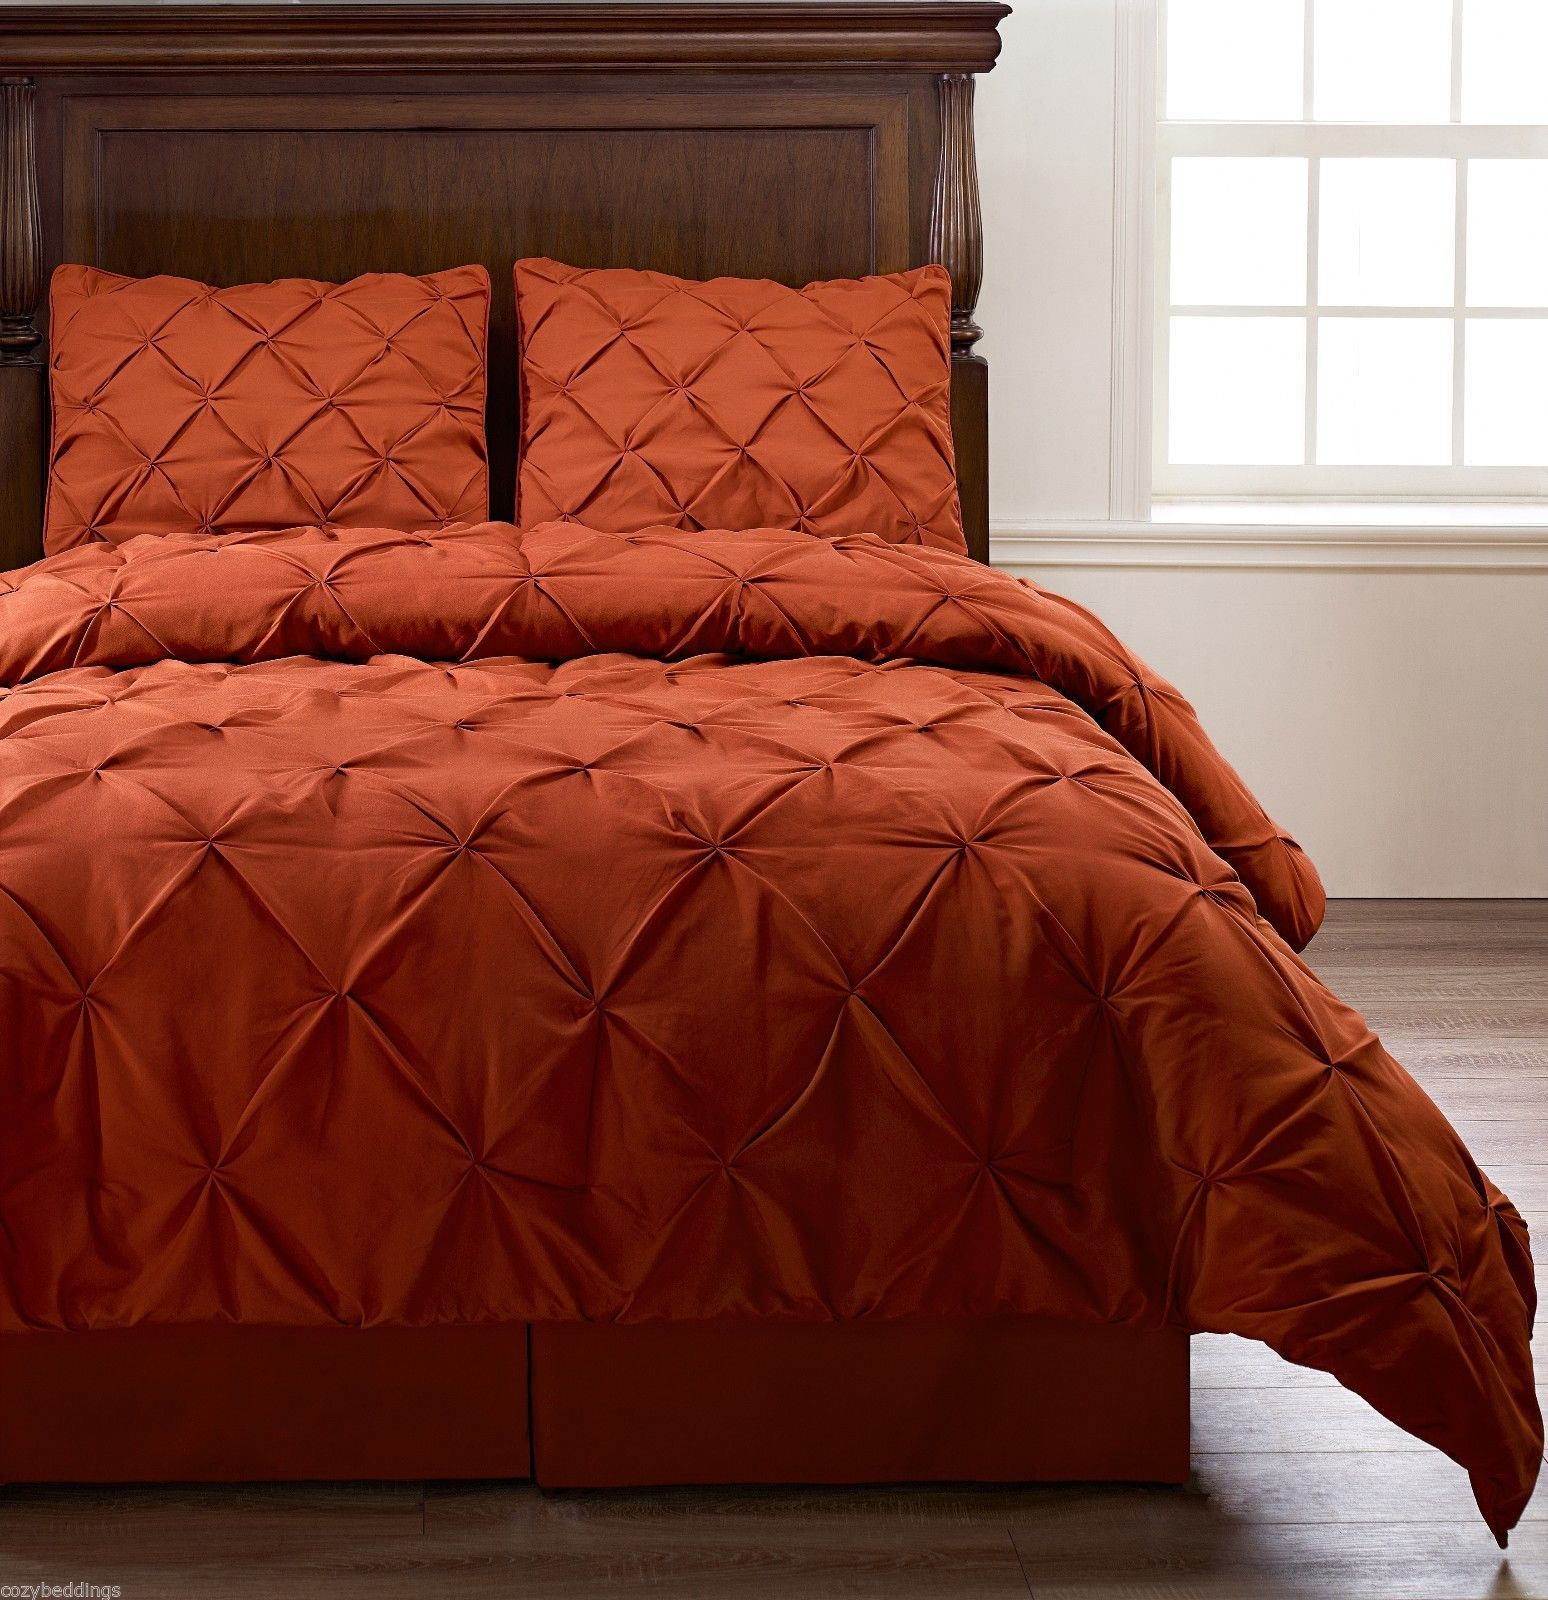 pinch pleat orange bedding 4 piece comforter set twin cal king size